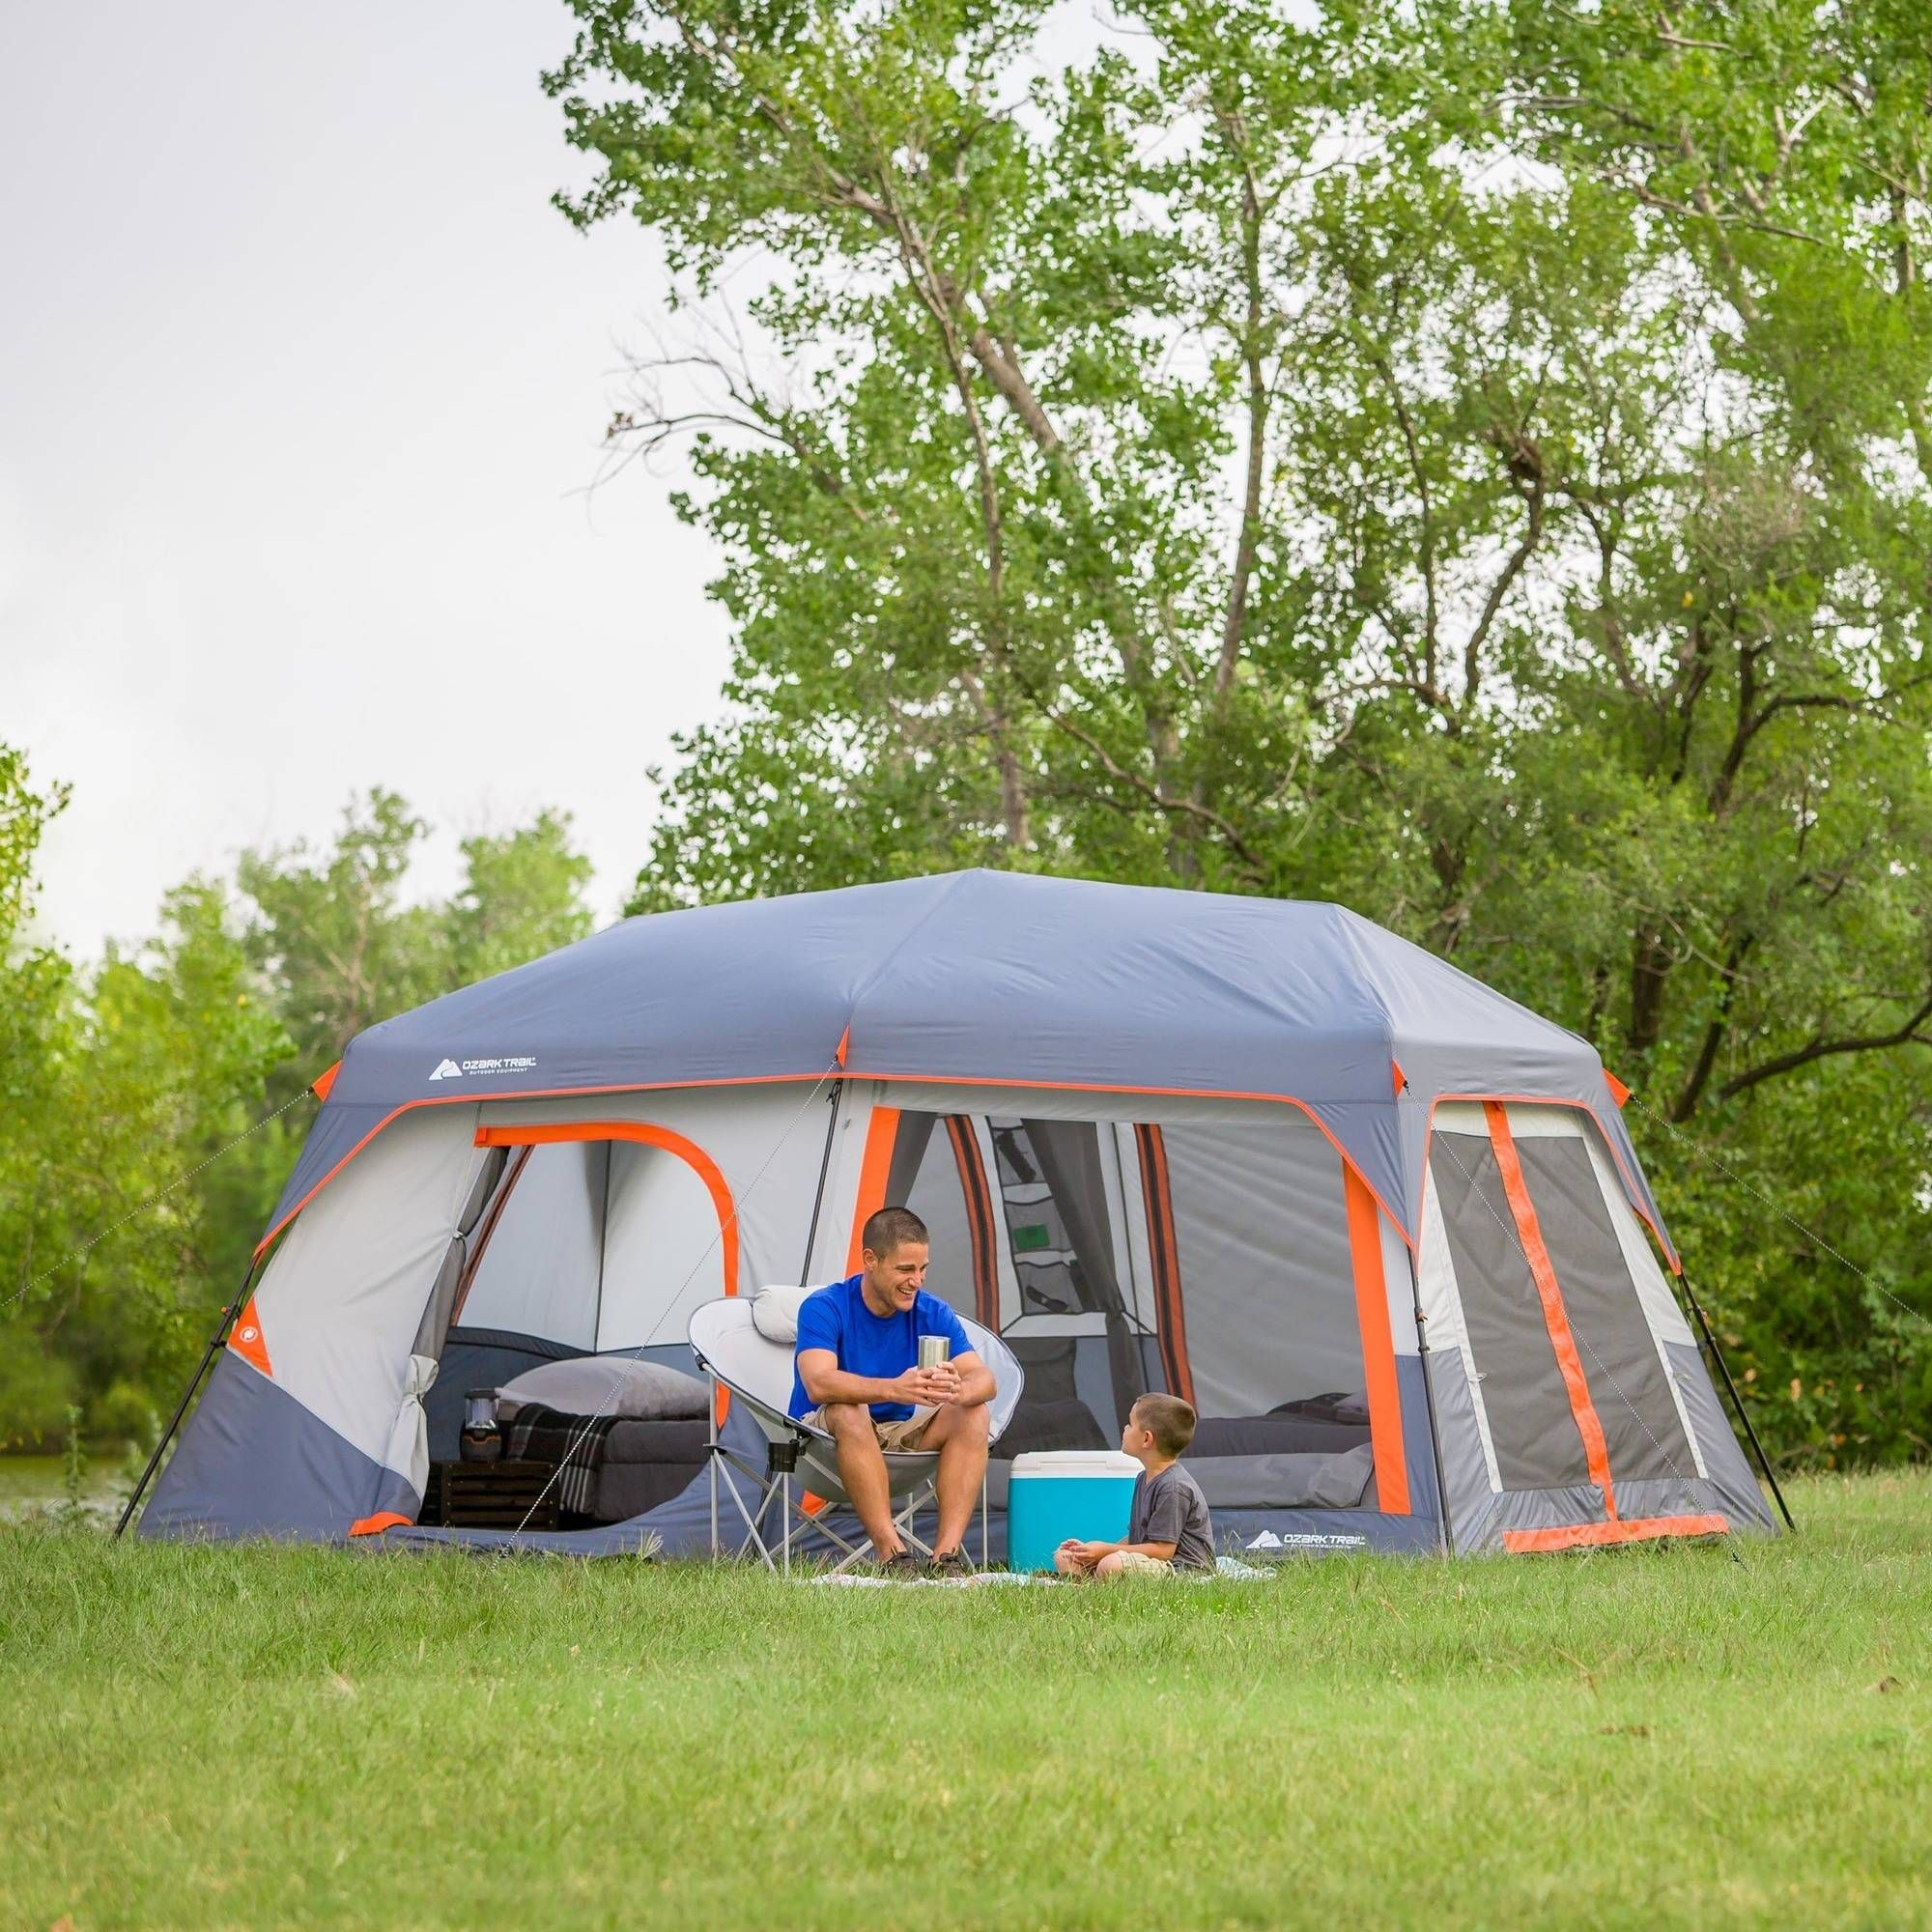 Ozark Trail 10 Person Instant Lighted Camping Cabin Tent Walmart Com Tent Cabin Tent Outdoor Camping Shower